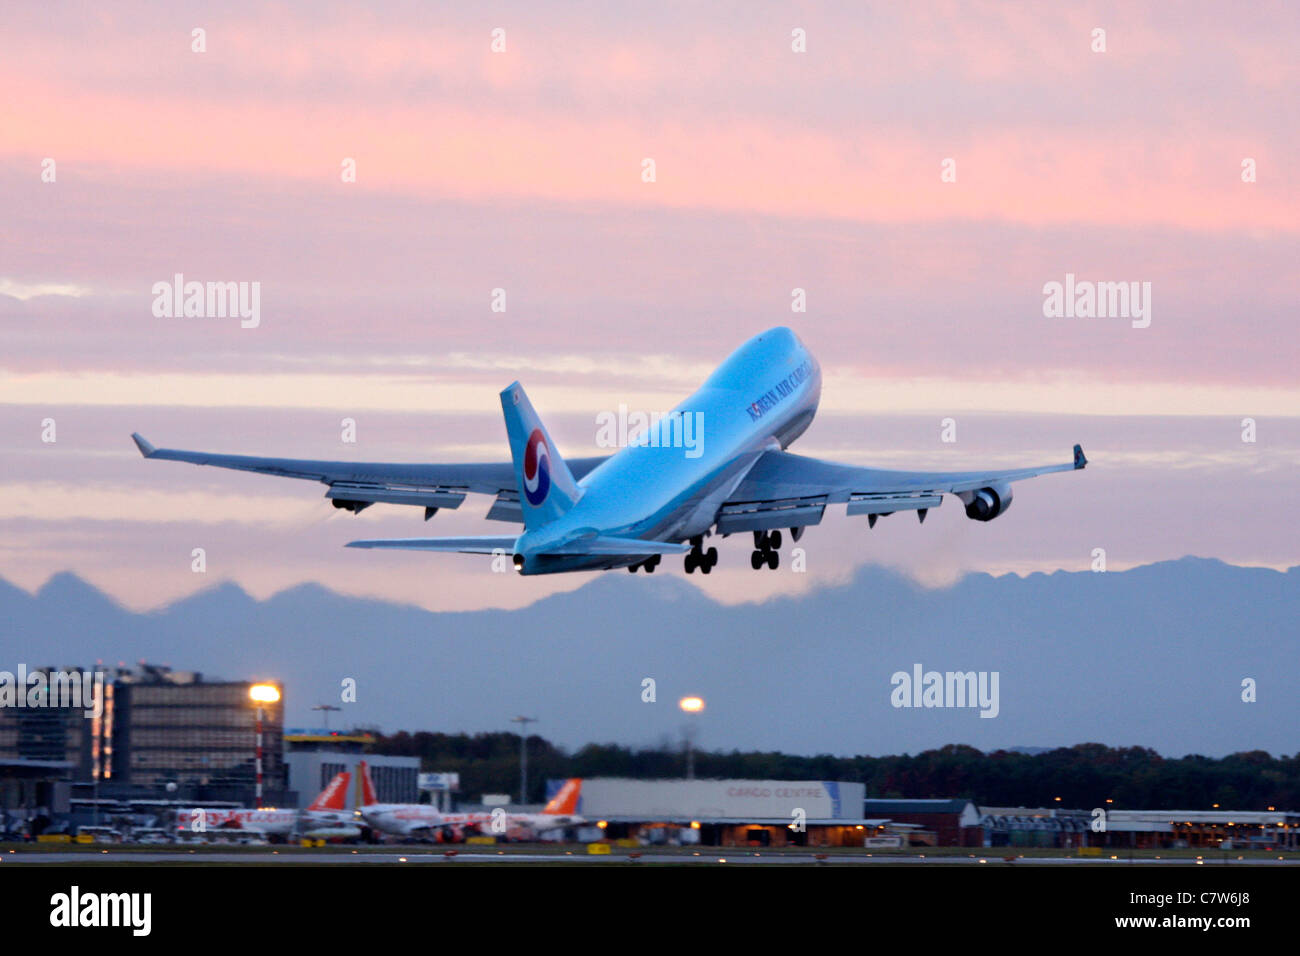 Italy, Lombardy, Malpensa Airport, Boing 747 at takeoff - Stock Image